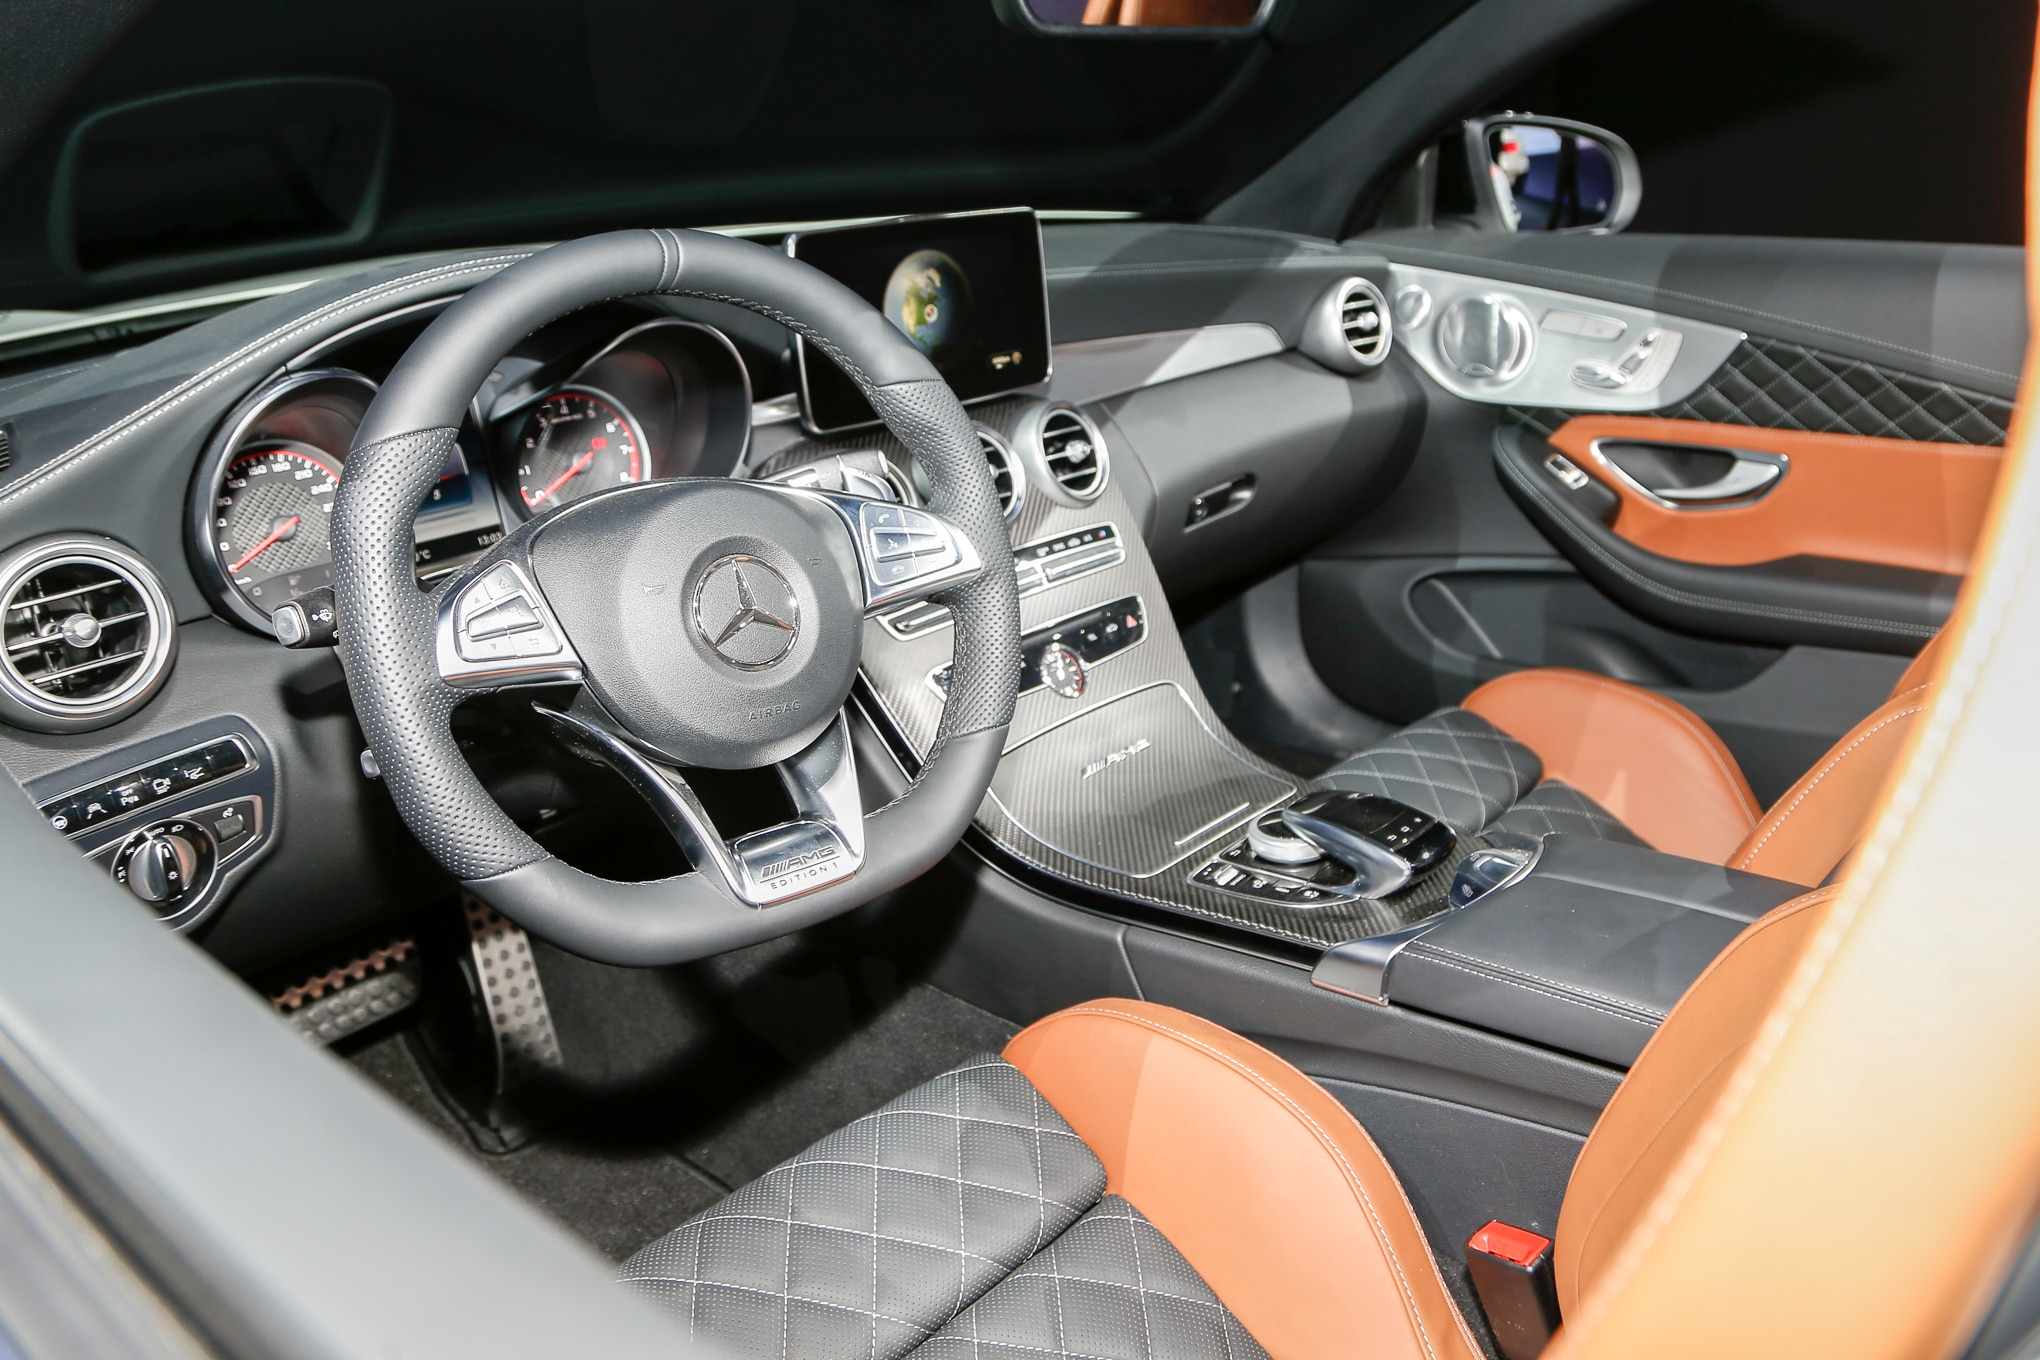 2017 Mercedes AMG C63 Cabriolet Revealed at 2016 New York Auto Show